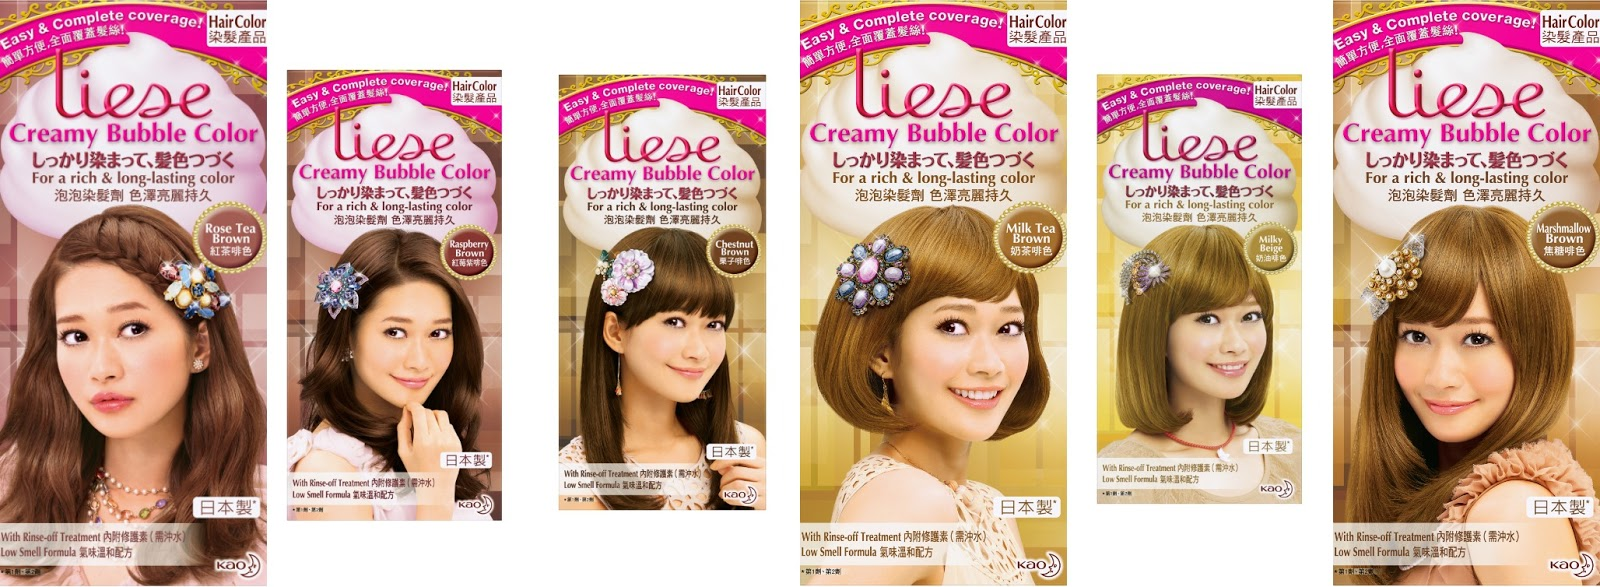 Liese Creamy Bubble Hair Color Now At Watsons Artsy